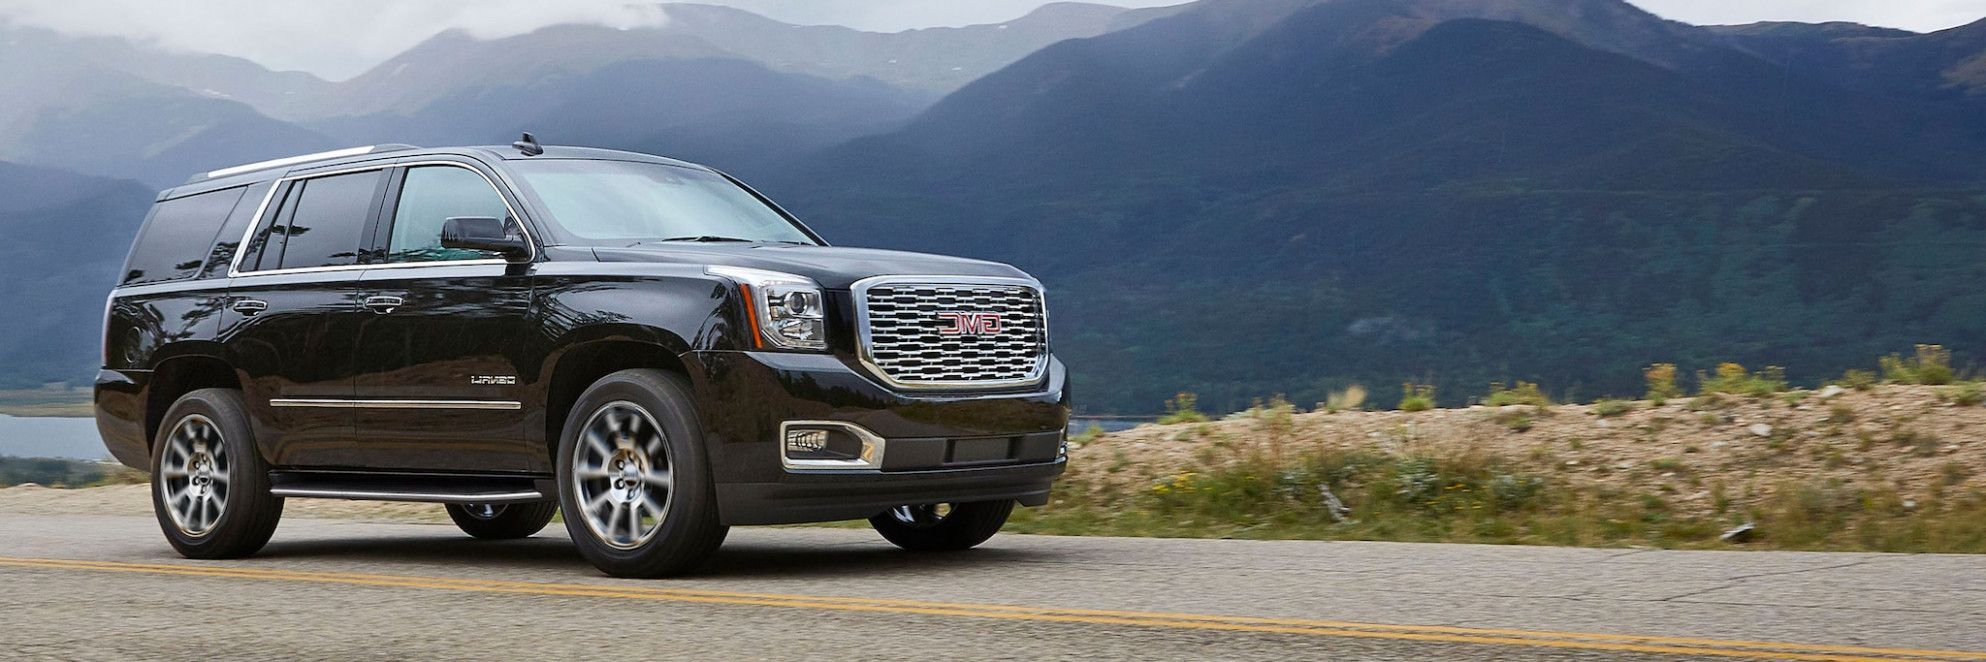 I Will Tell You The Truth About Gmc Yukon 2020 For Sale In Gmc